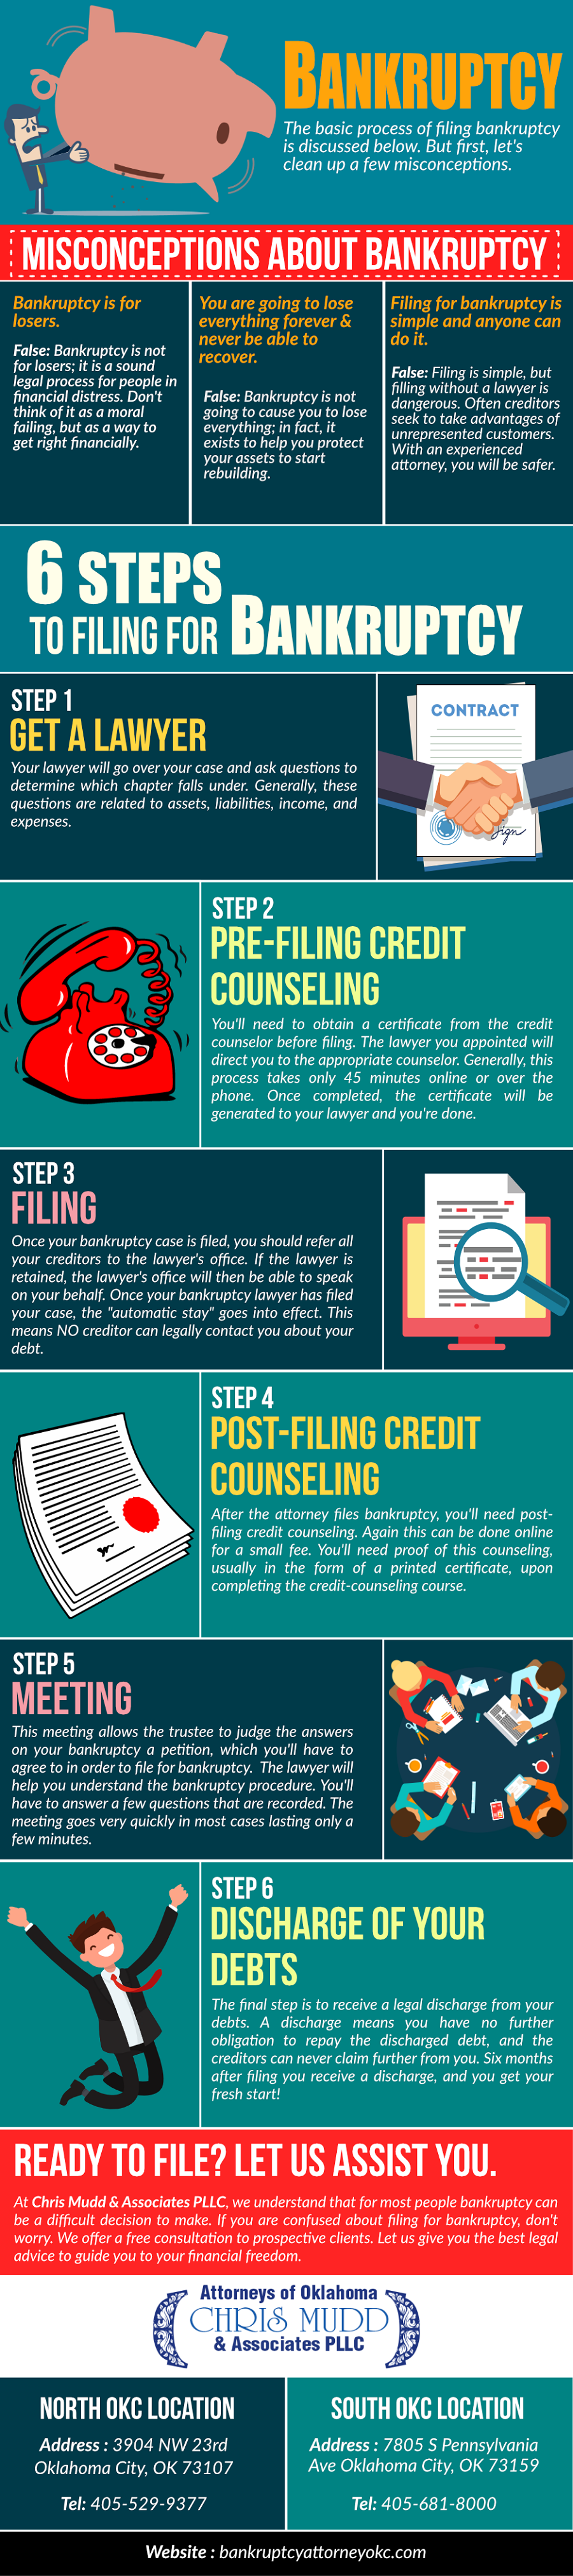 6 steps to filing for Bankruptcy.png